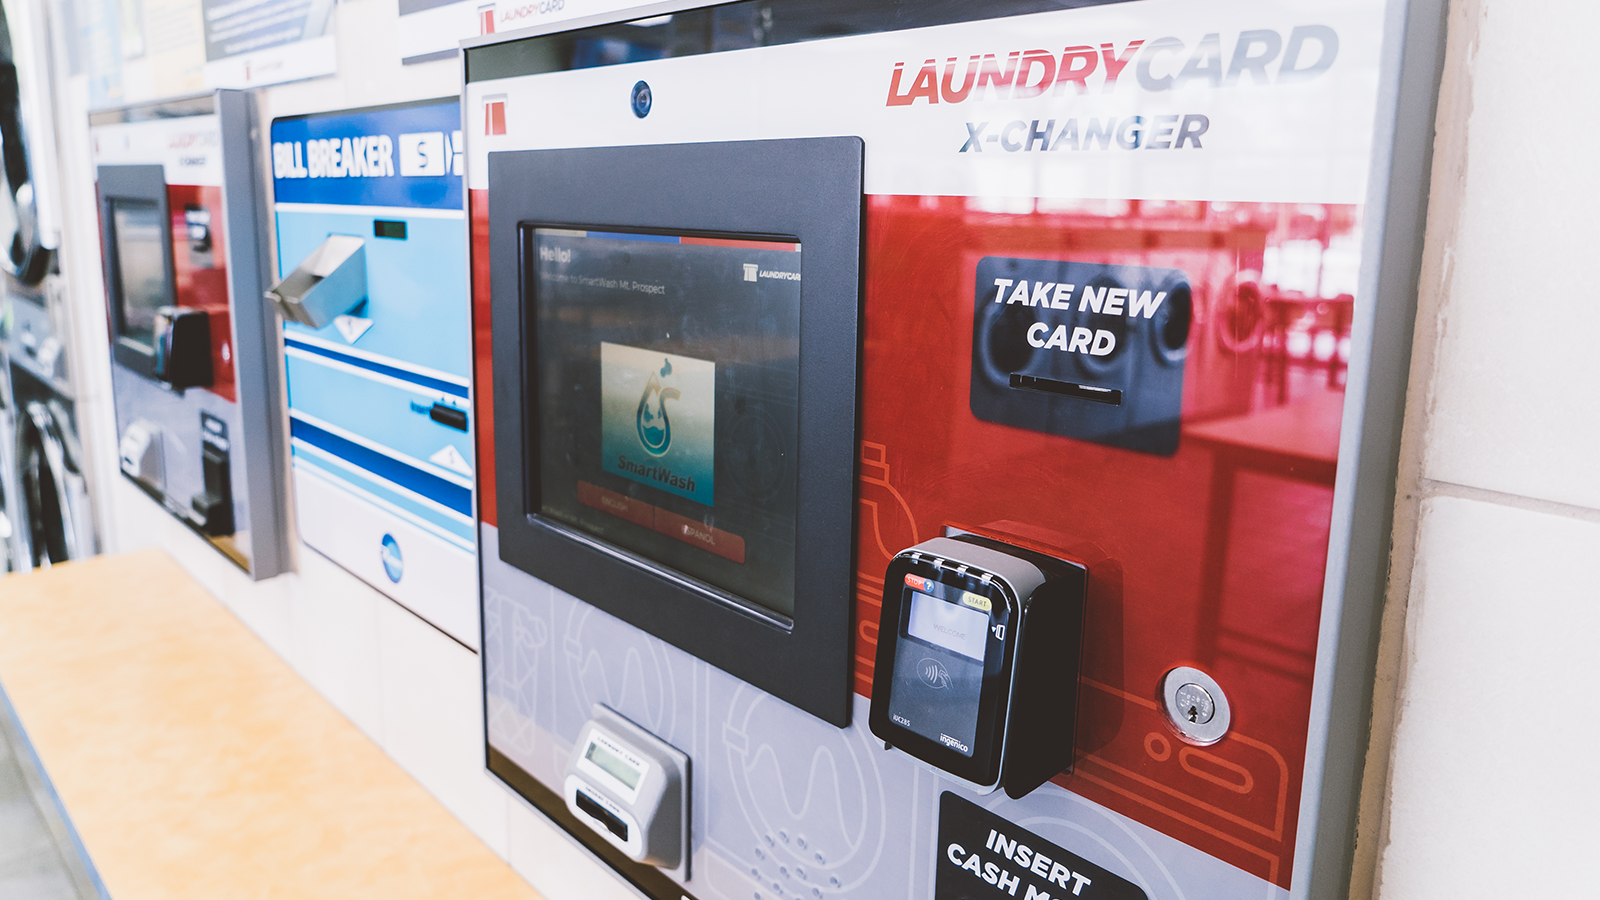 LaundryCard | All-In-One Laundry Management System | Card-Only